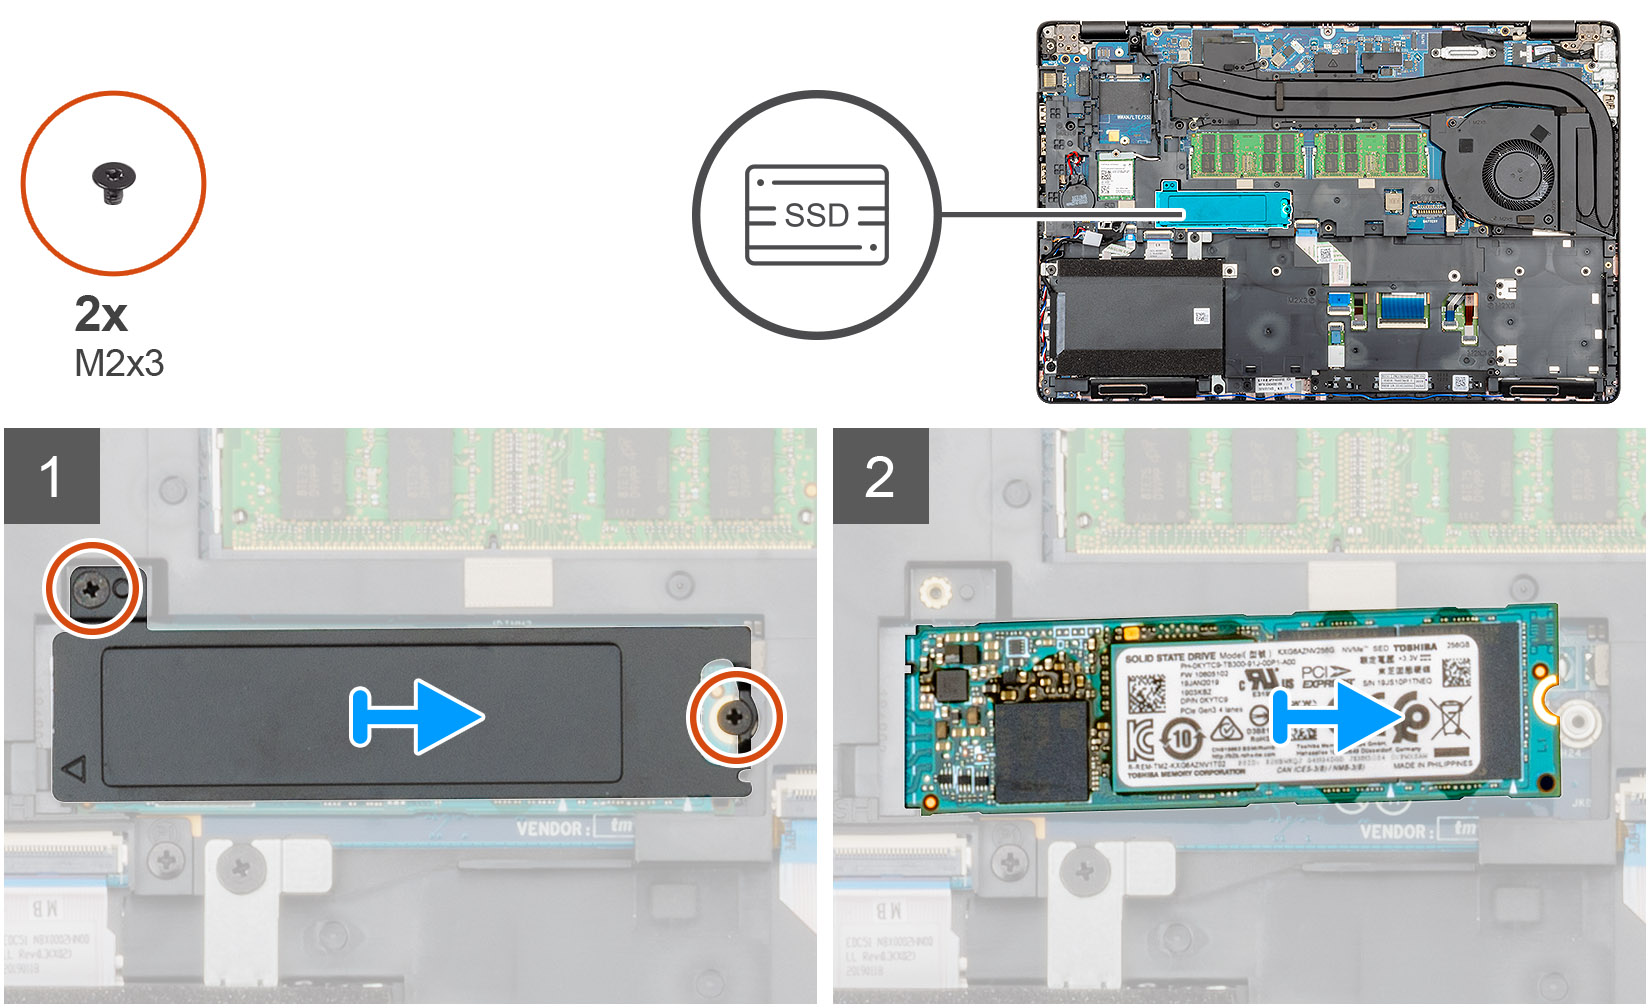 Removing the SSD